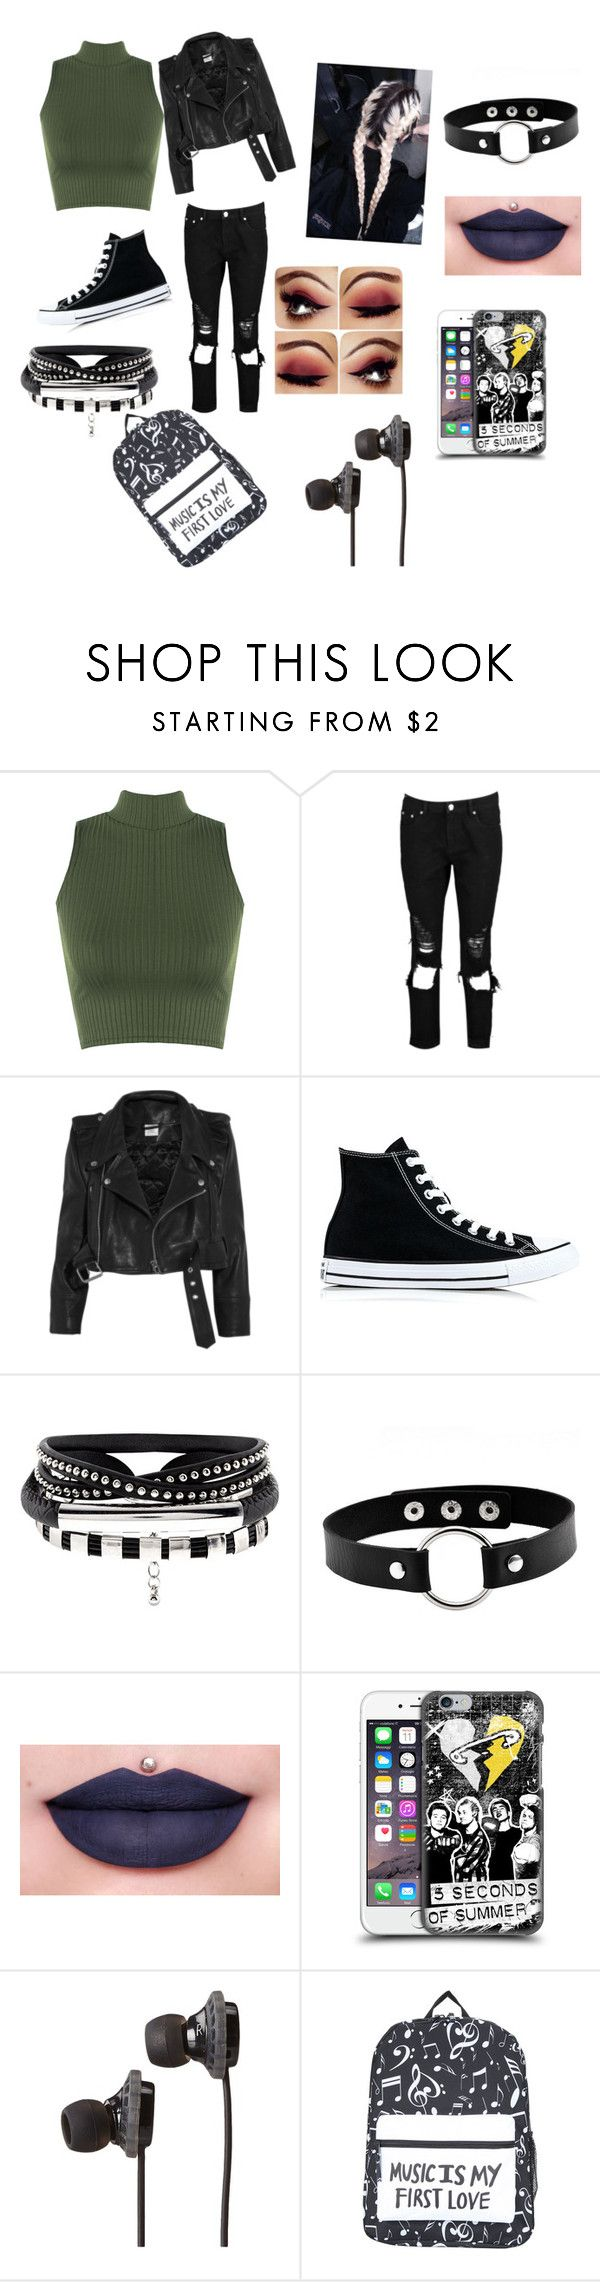 """Untitled #2"" by bubbles4life01 ❤ liked on Polyvore featuring WearAll, Boohoo, Vetements, Converse, Jeffree Star and SOL Republic"